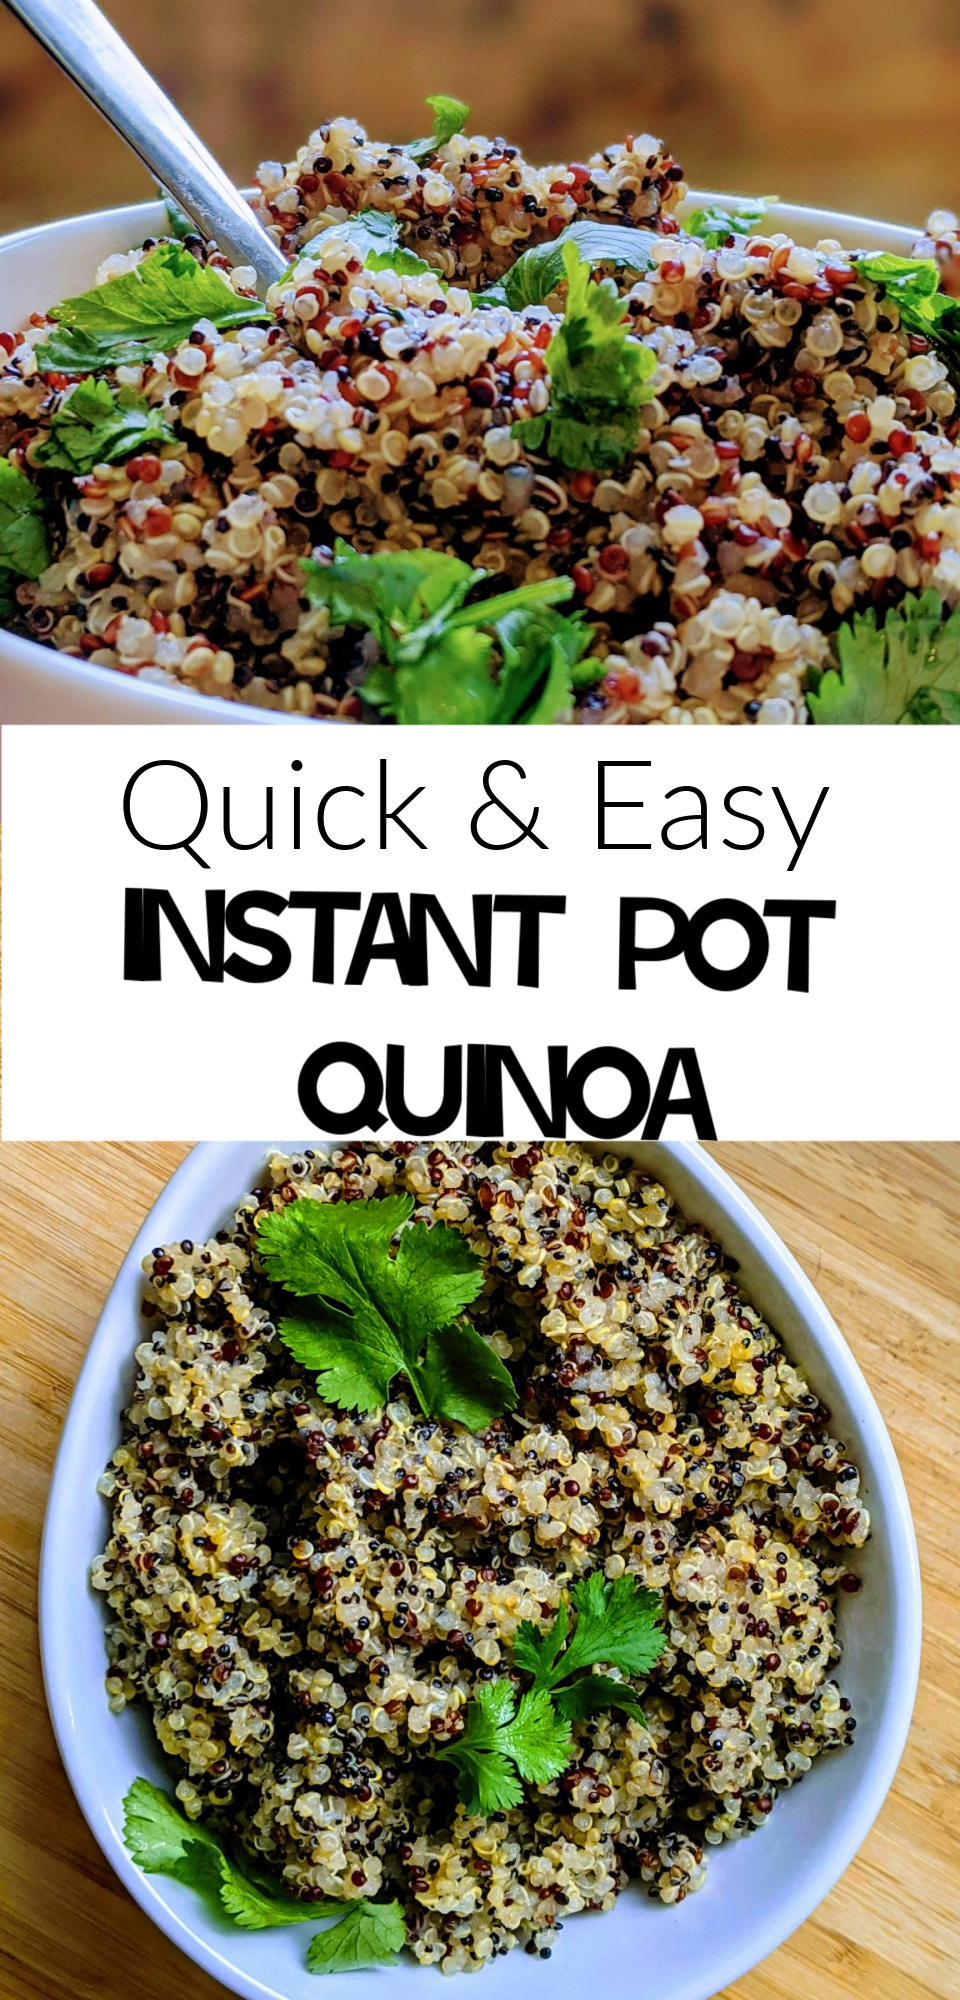 This is a quick and easy Instant Pot Quinoa recipe. Quinoa is a wonderful side dish and substitutes for rice, and it's never been easier than when made in the Instant Pot! via @simplysidedishes89